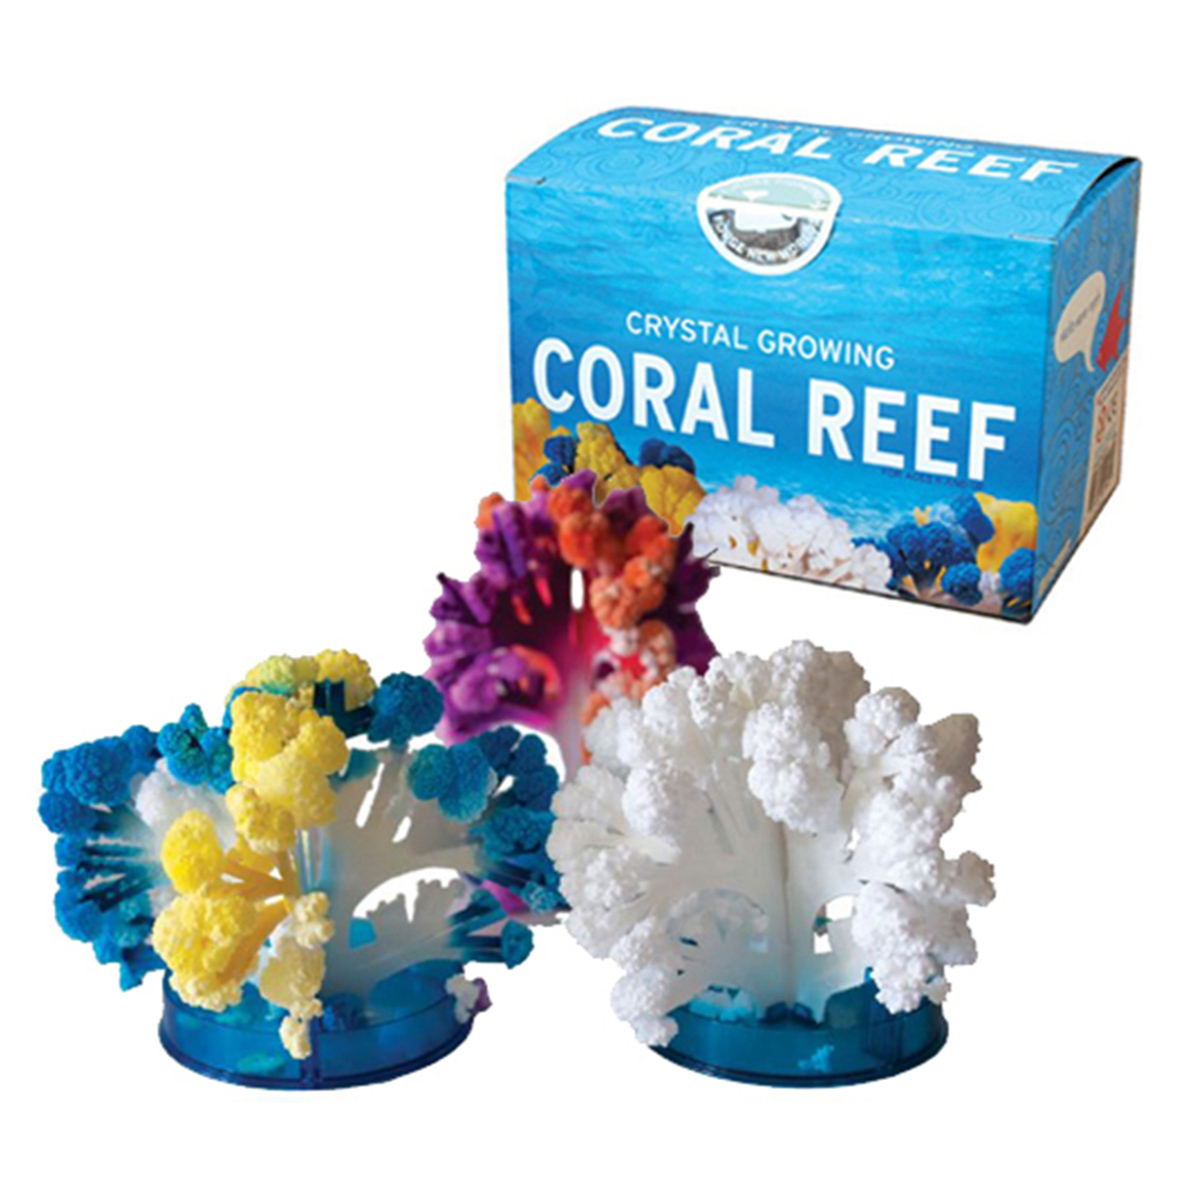 Coral Reef Kit Christmas Gifts for Kids